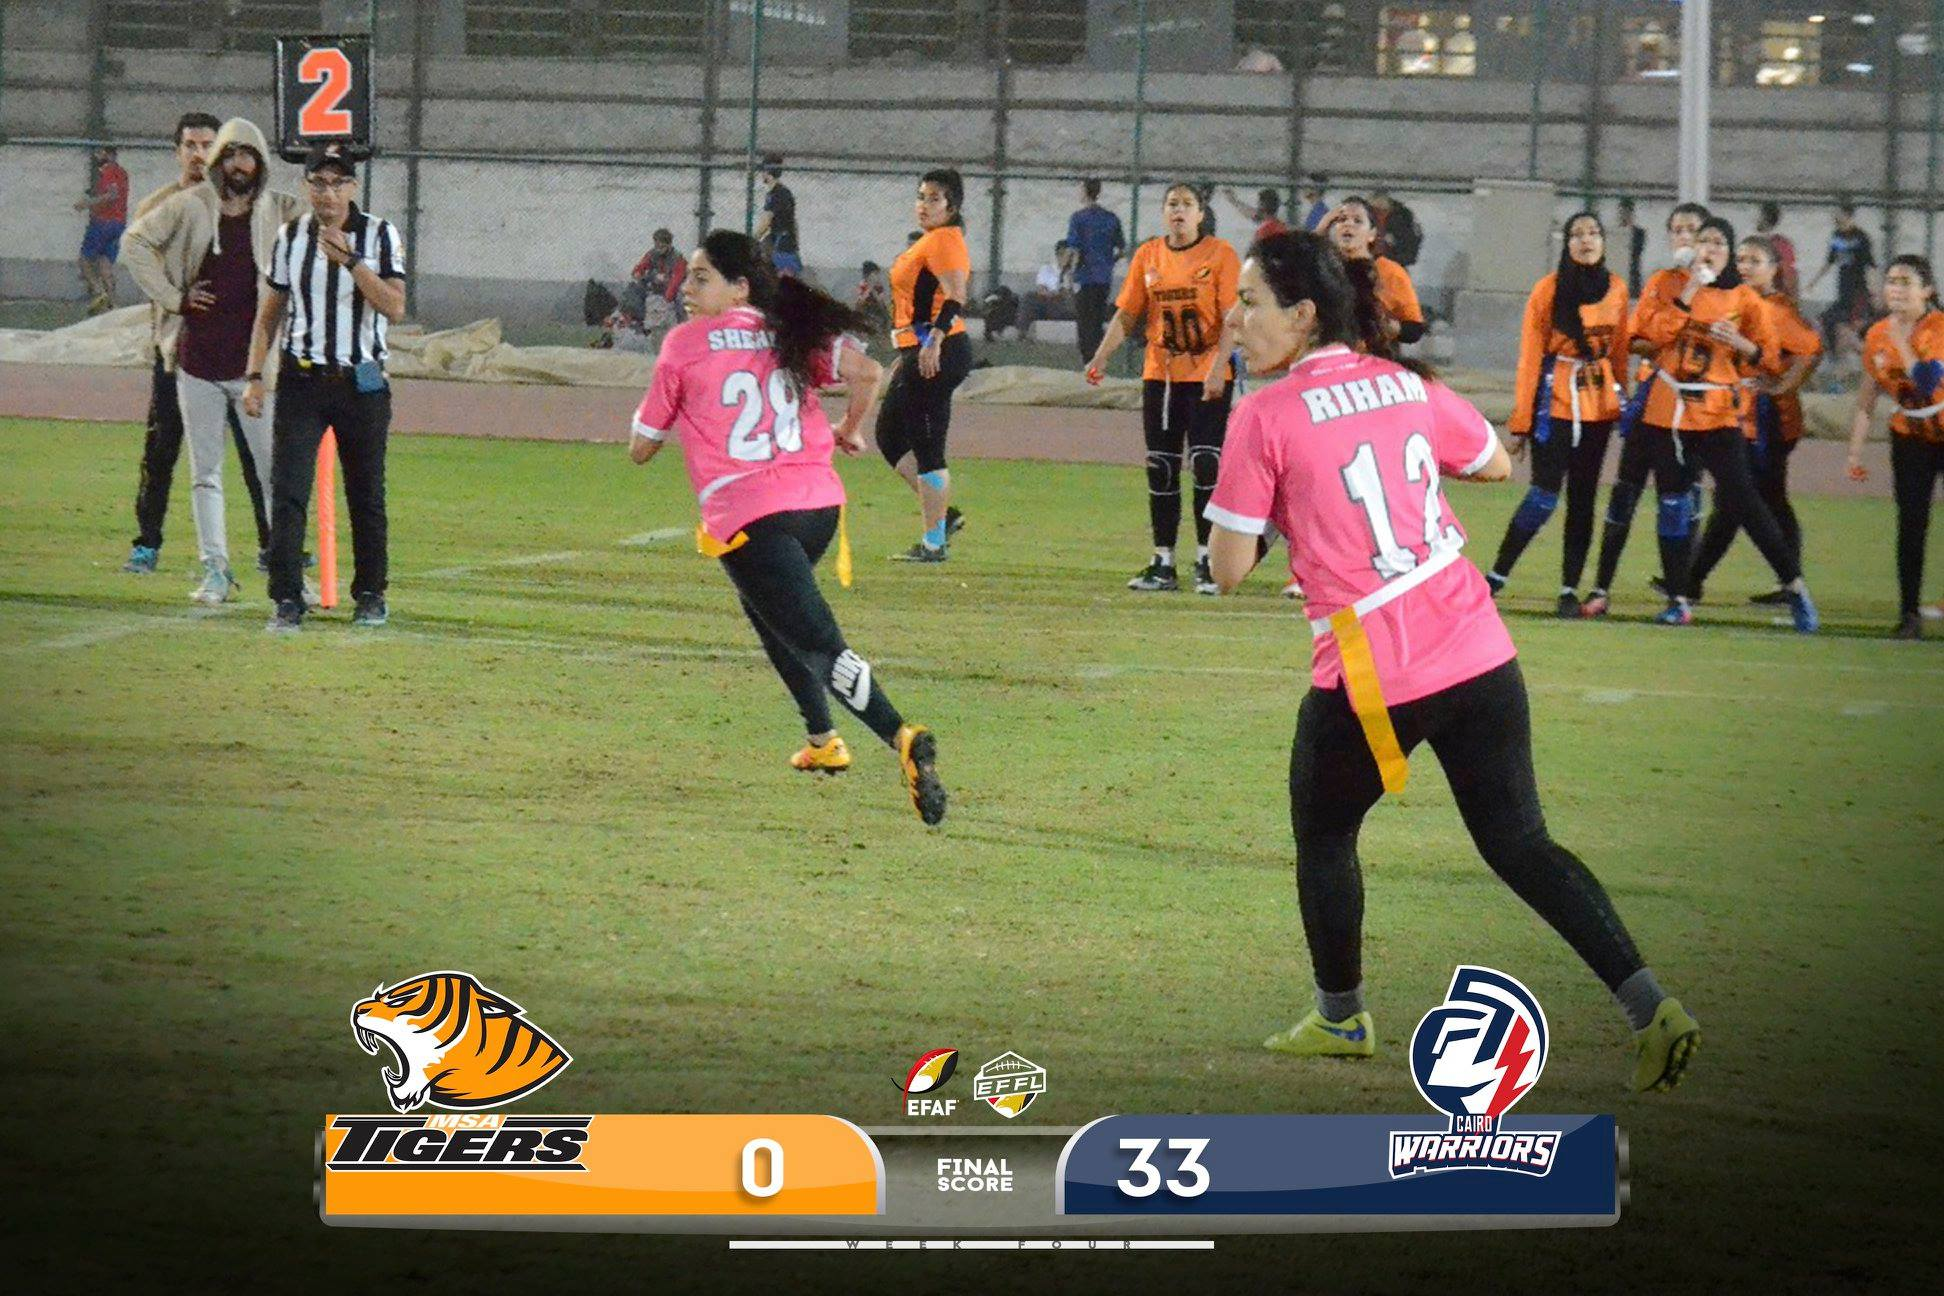 tigers vs warriors - photo #18